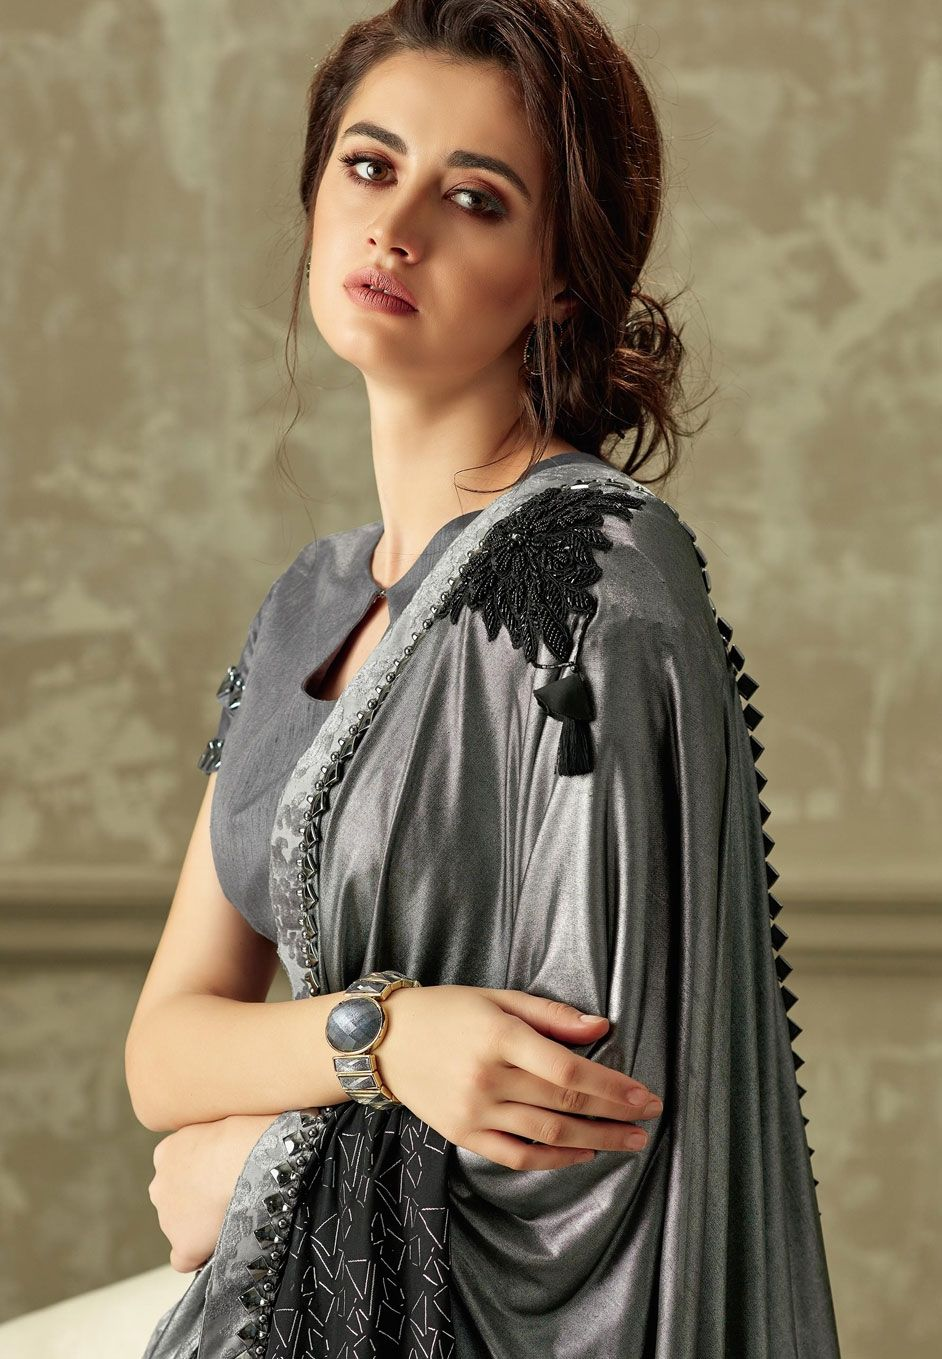 eb989b816b6 Party wear Designer Sarees  Go get Styled in the Glamorous Look ...